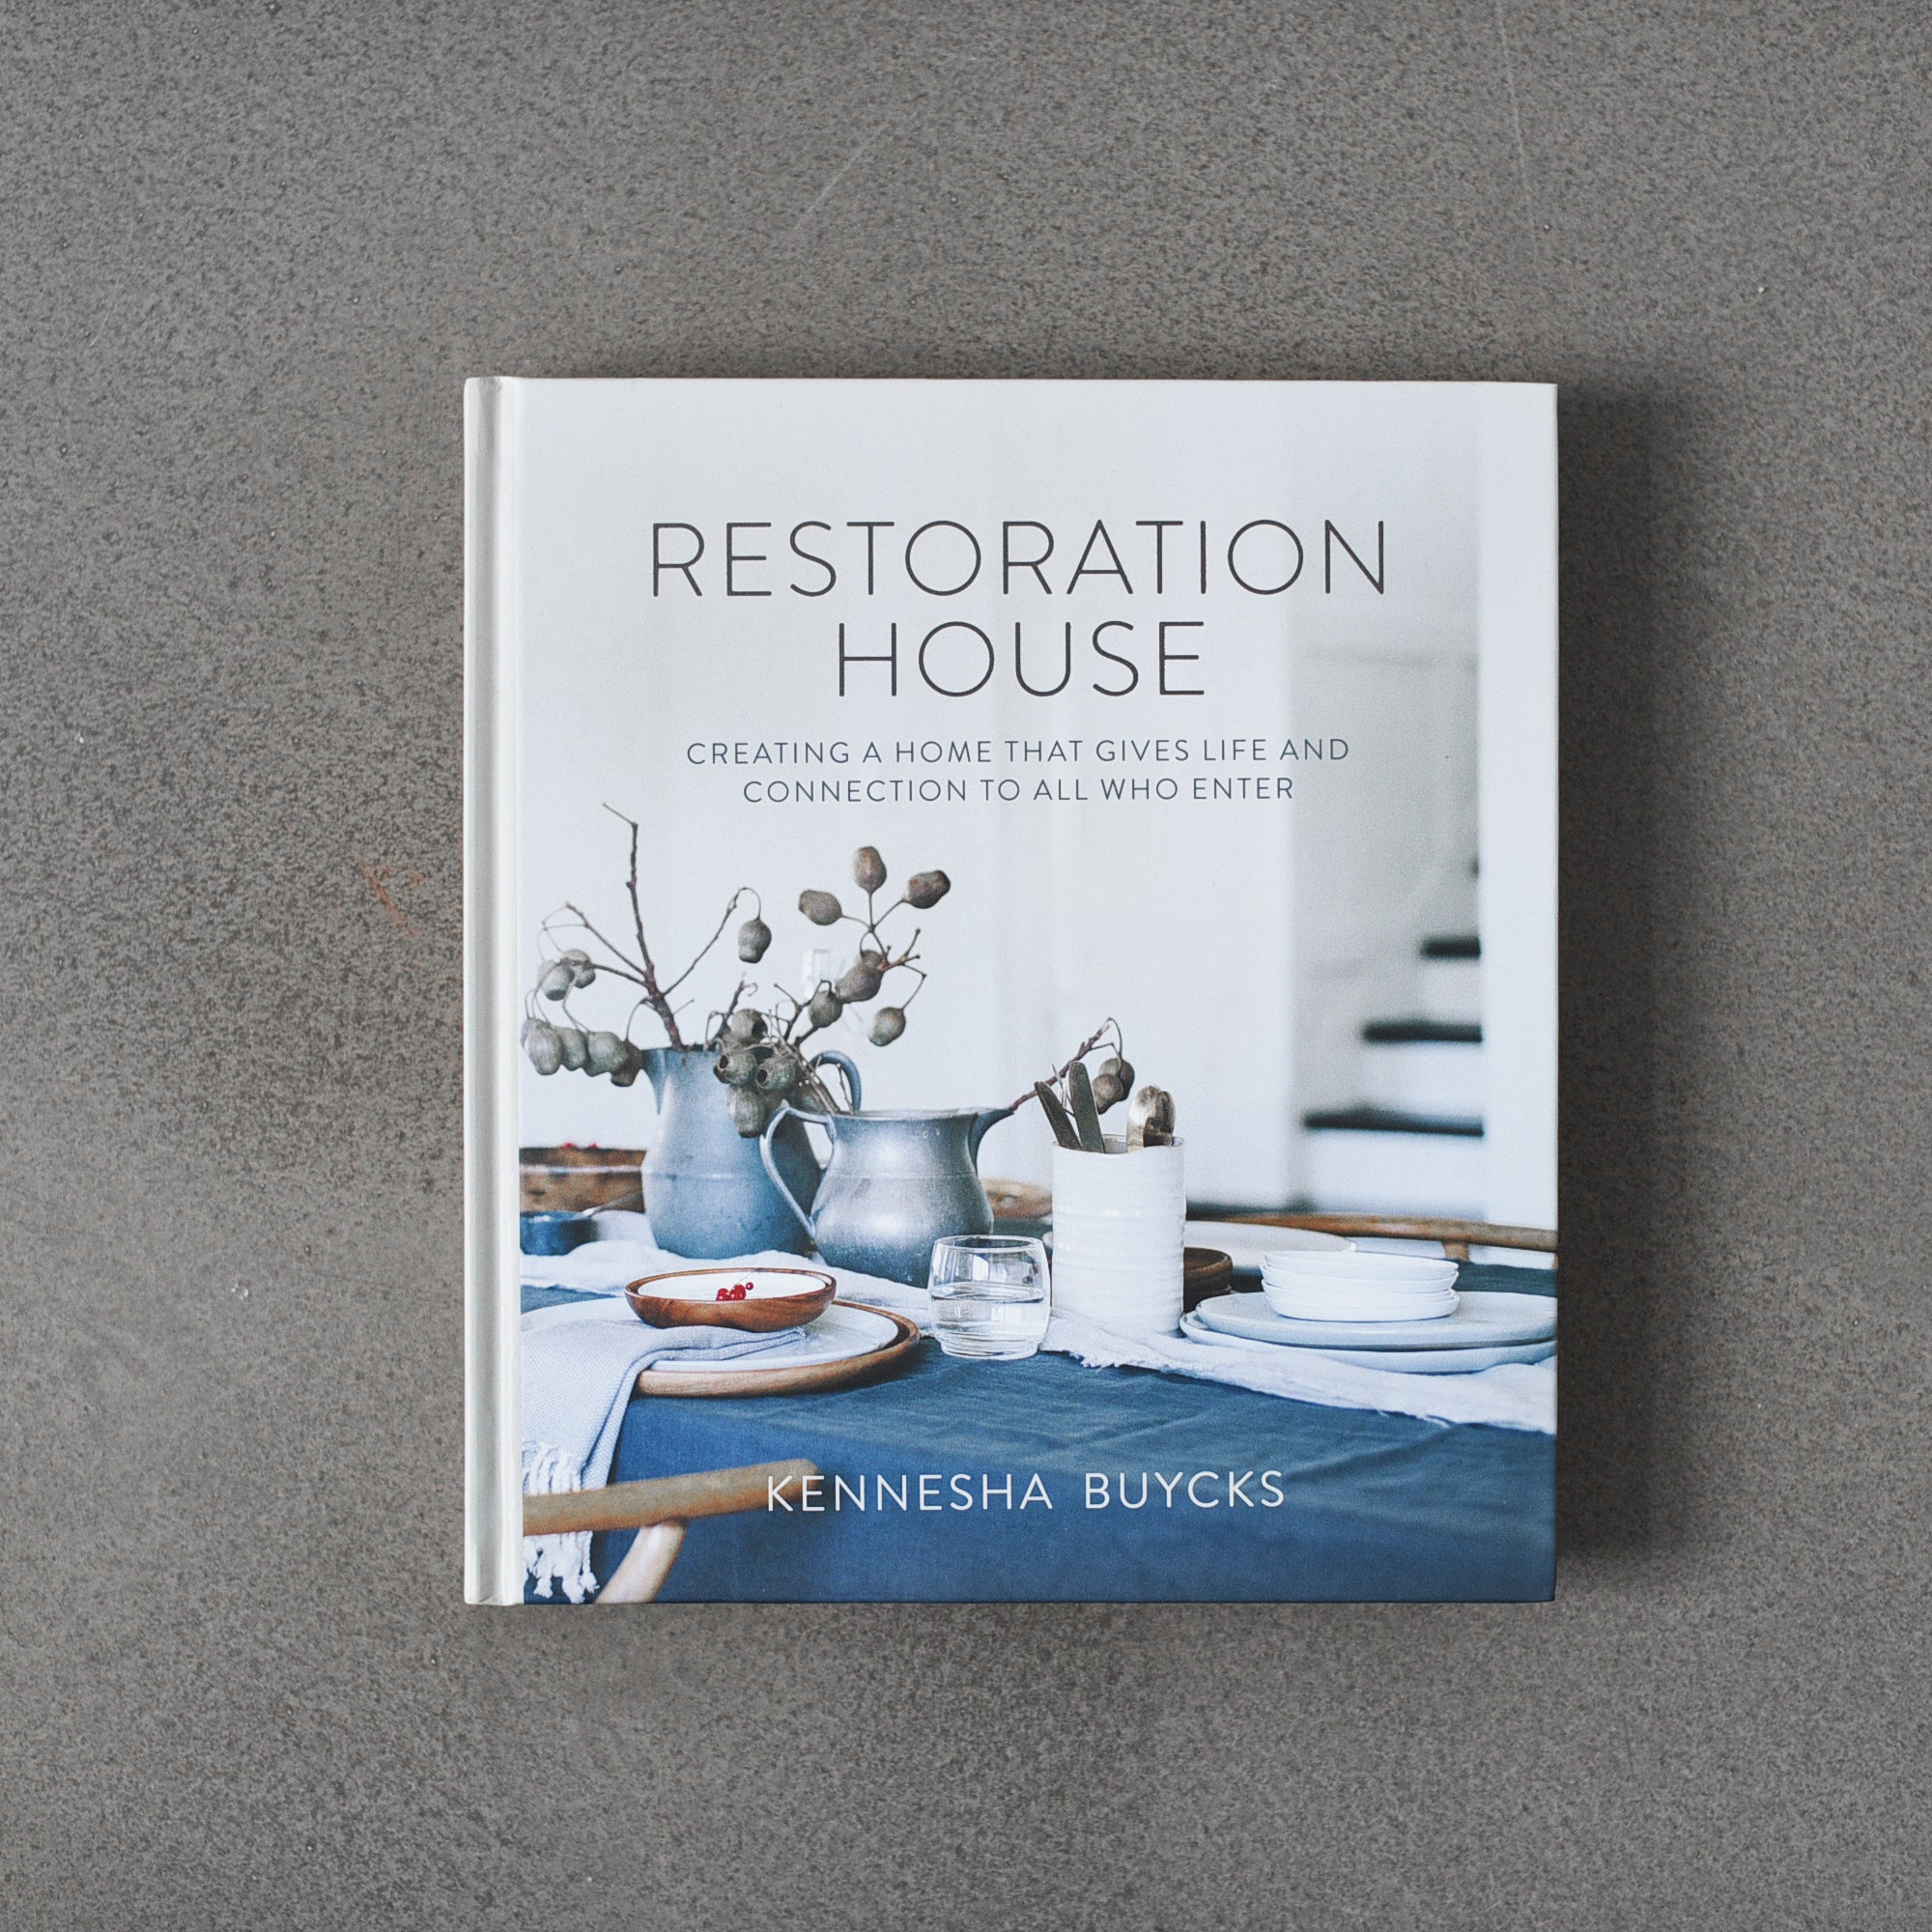 Restoration House: Creating a Home That Gives Life and Connection to All Who Enter